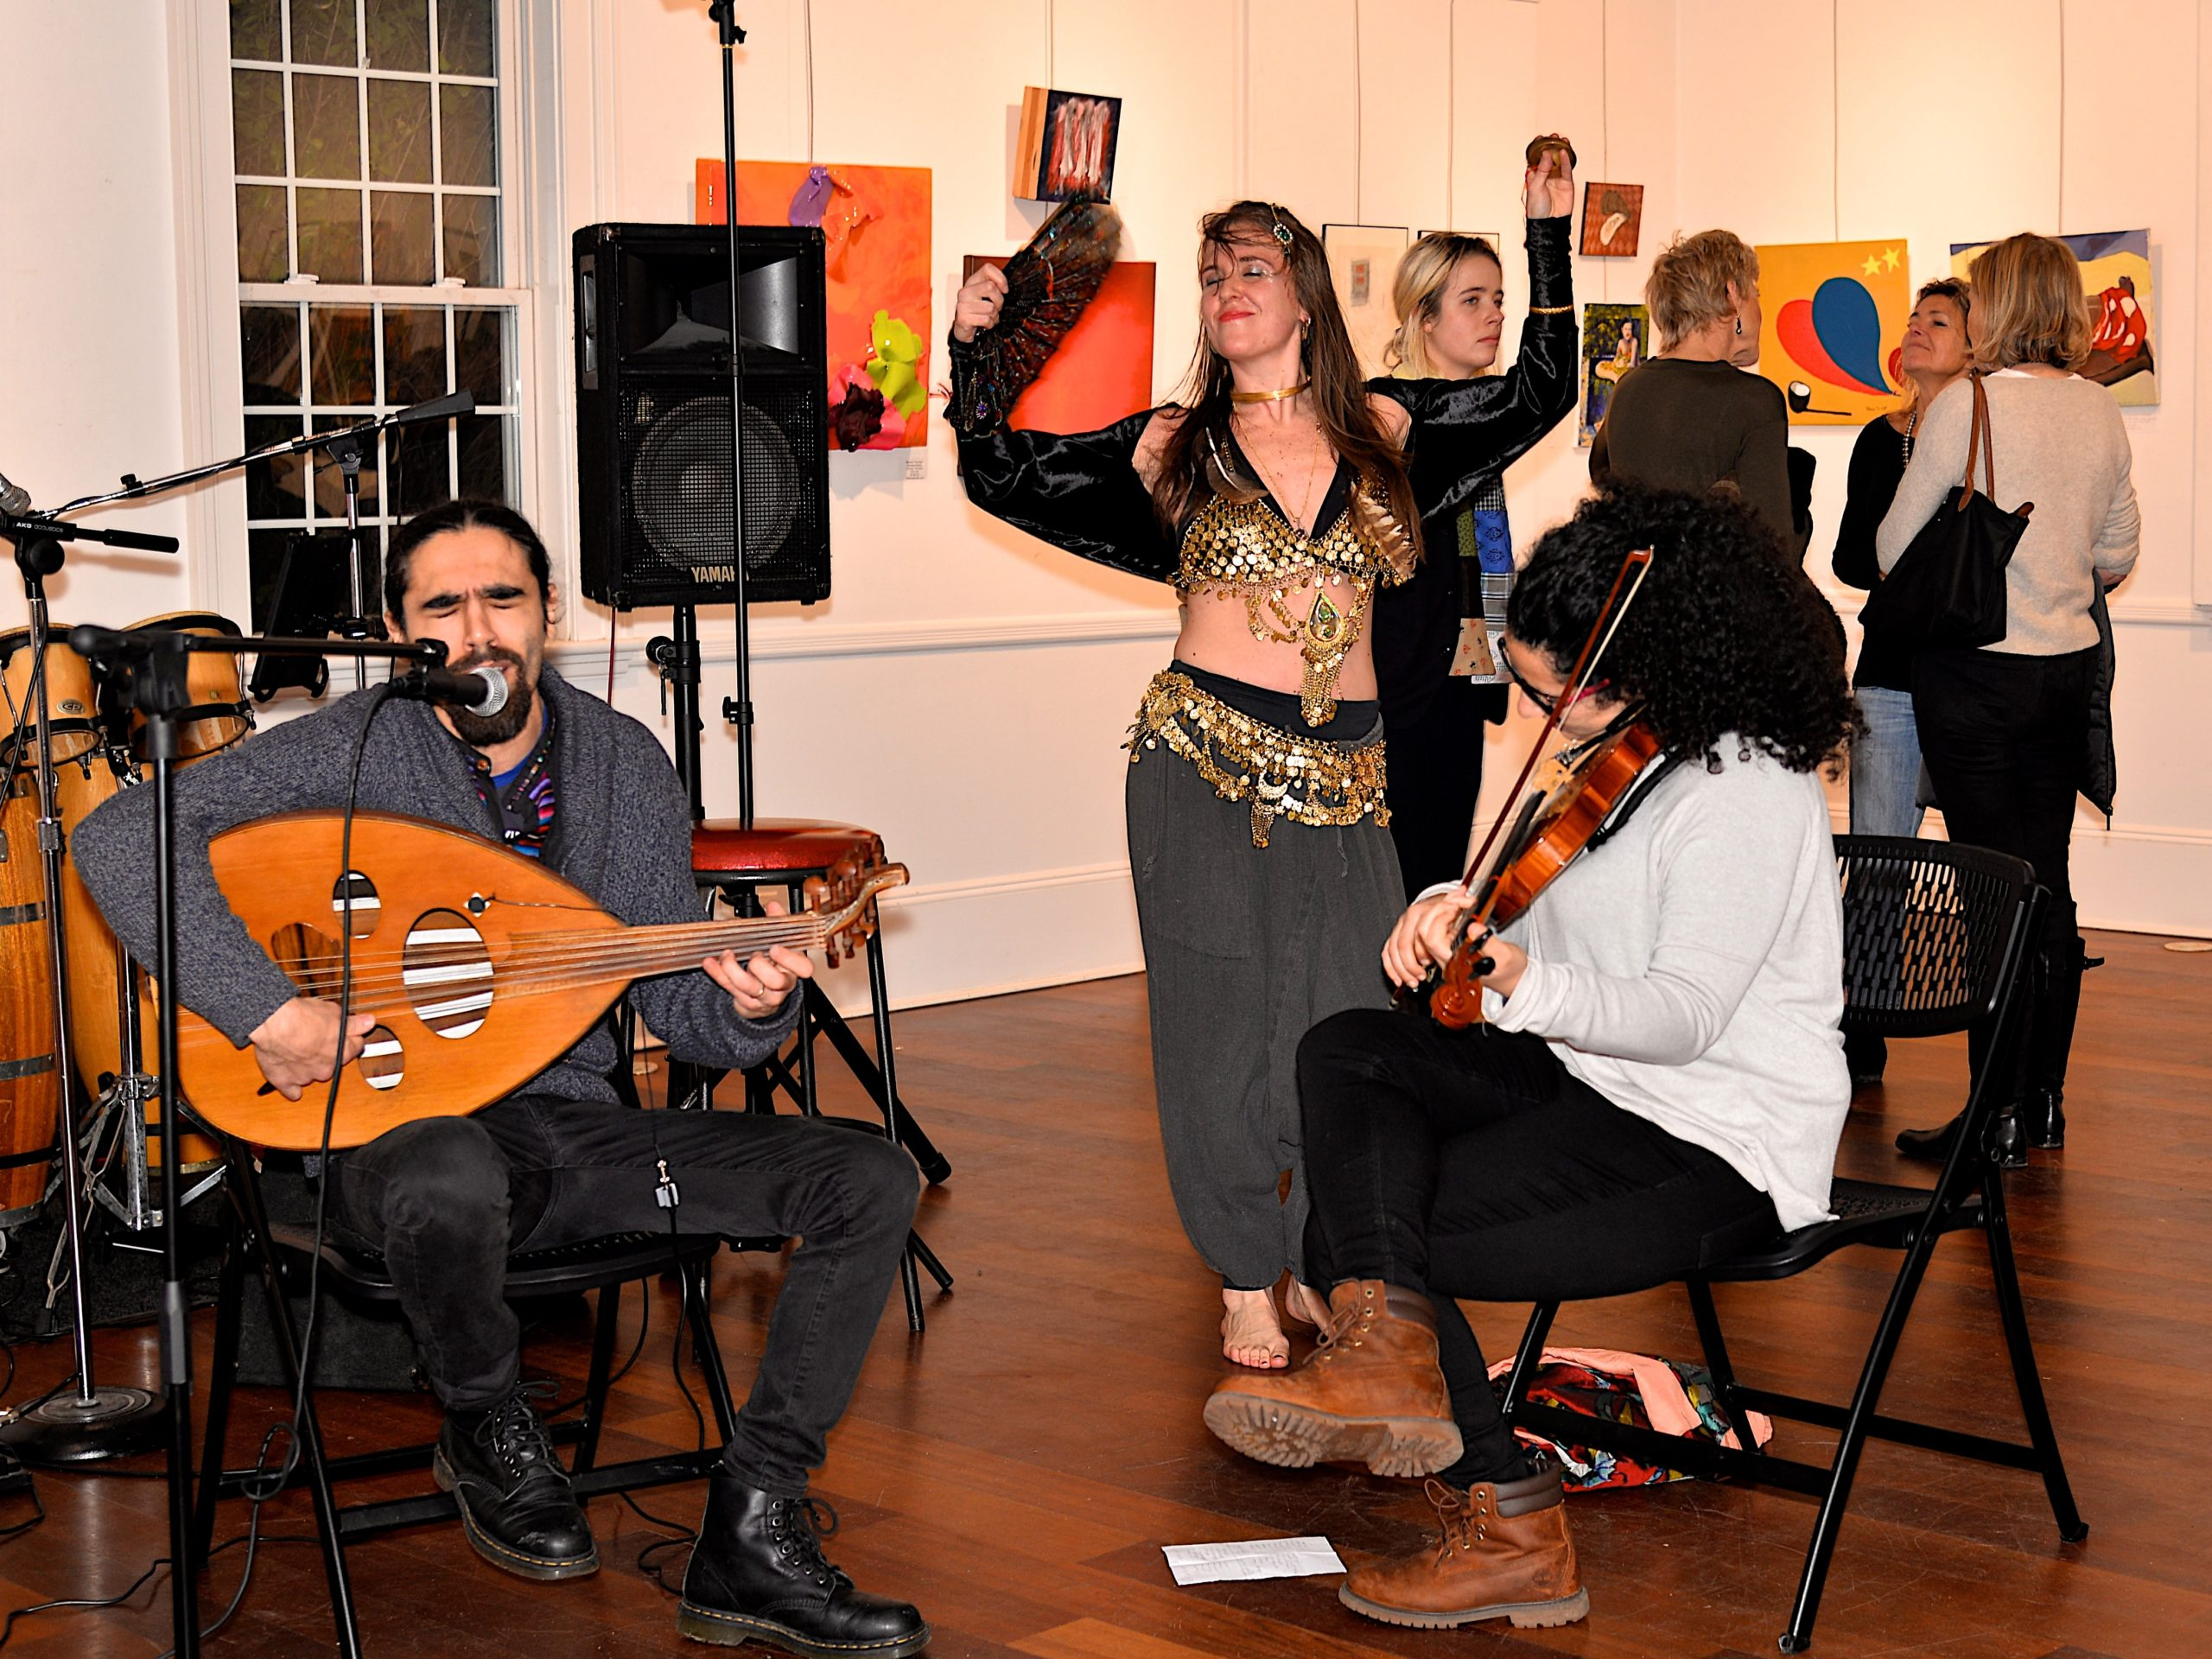 The Love And Passion art show, curated by Karyn Mannix, opened at Ashawagh Hall last weekend and featured art work, music, dancing and poetry. Molly Moonbeam dancing while the Al Hawili Band plays. KYRIL BROMLEY